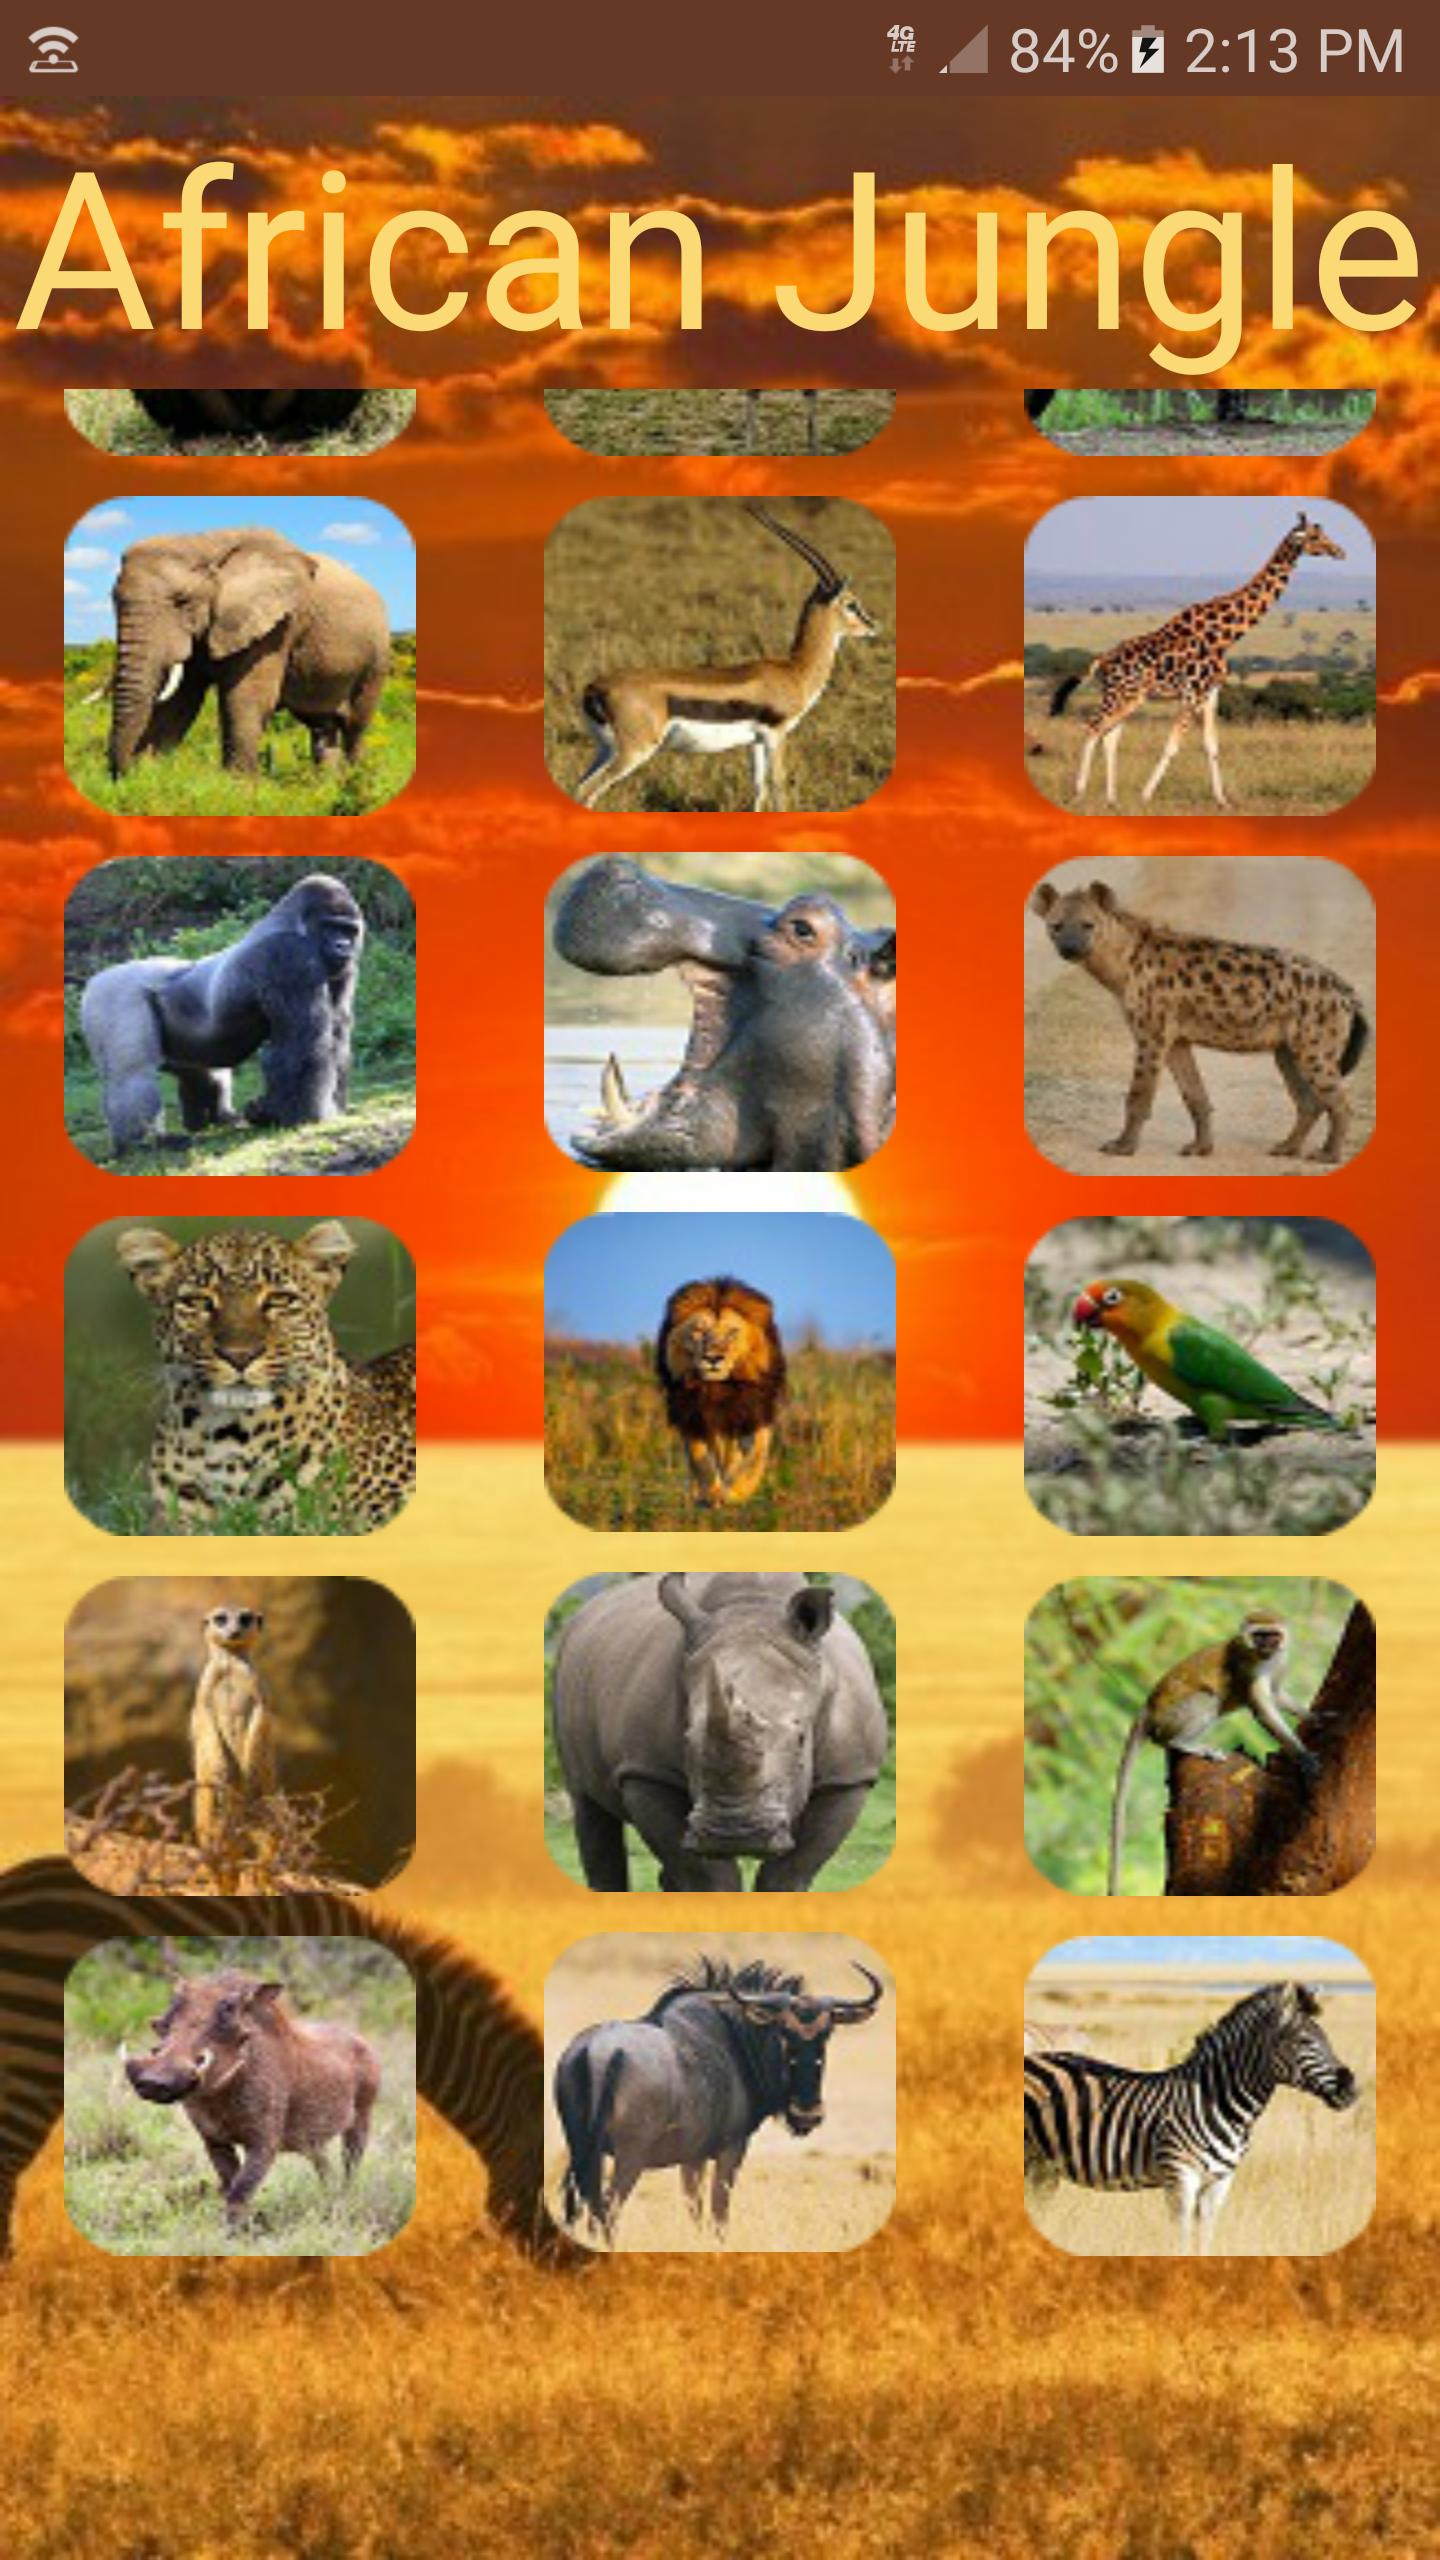 Animal Sounds: African Jungle for Android - APK Download